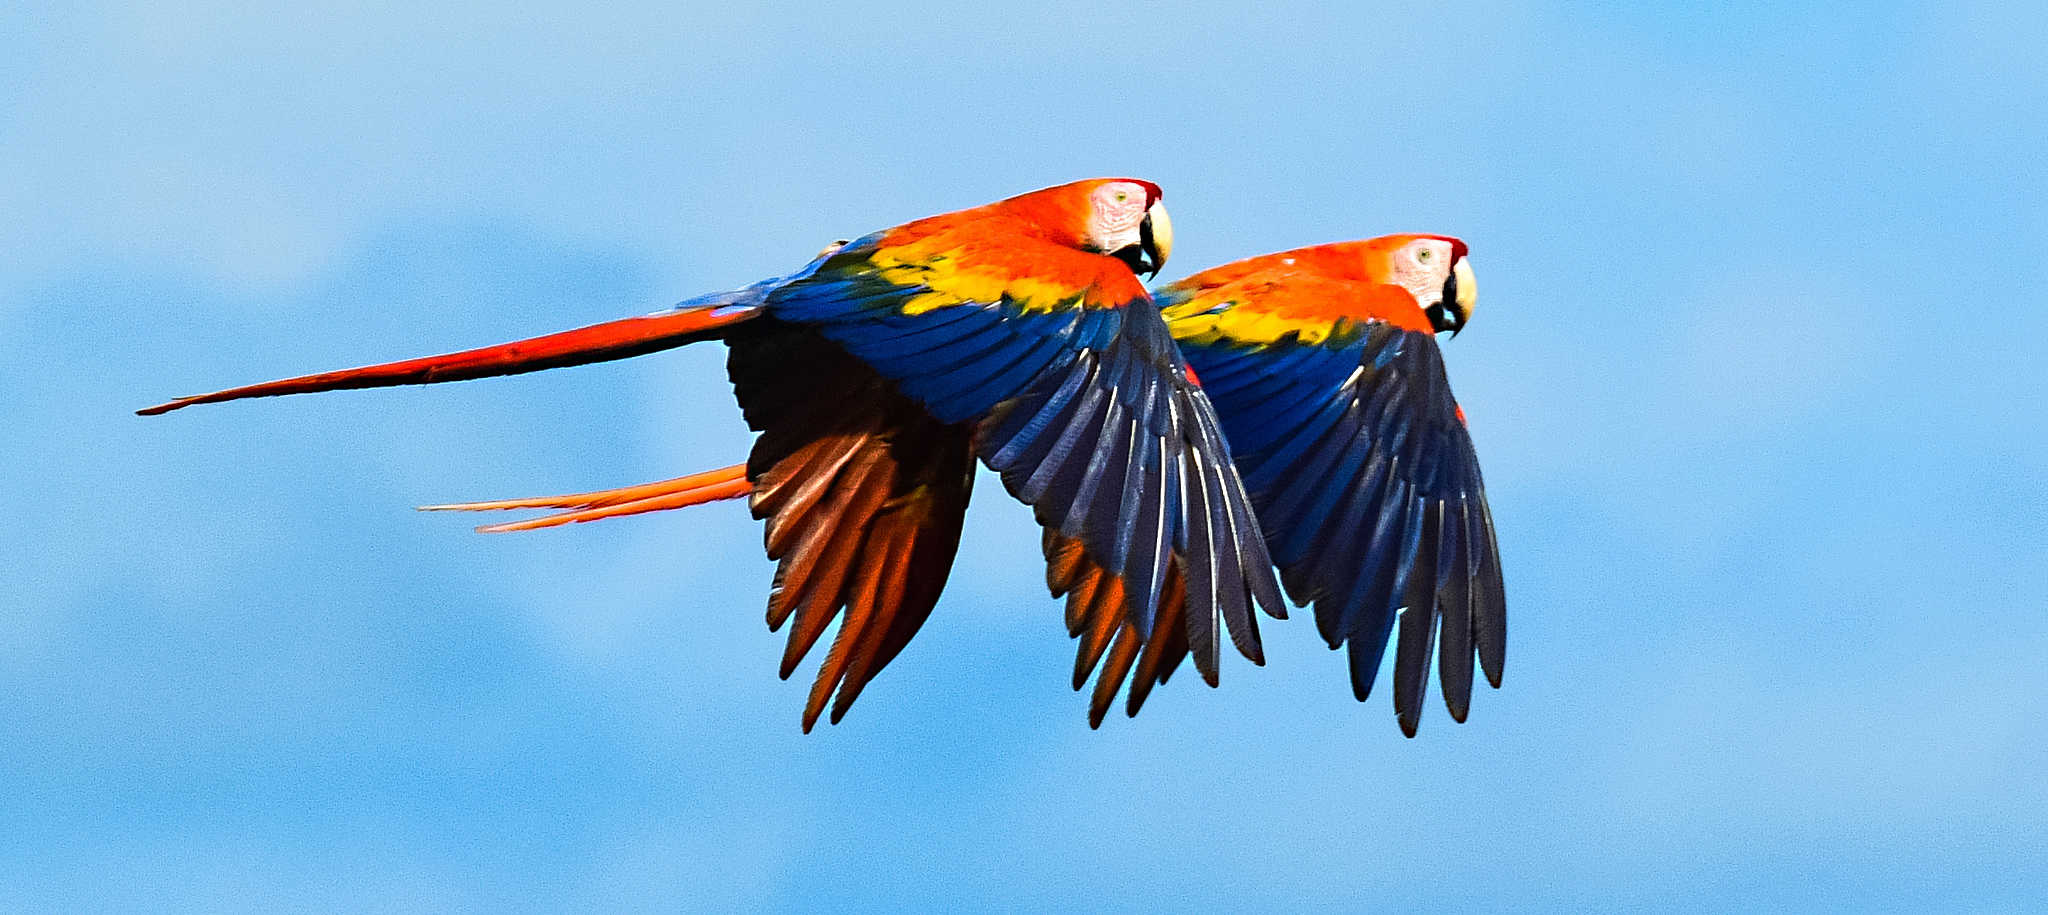 Usfws To List Scarlet Macaw Subspecies As Endangered The Wildlife Society